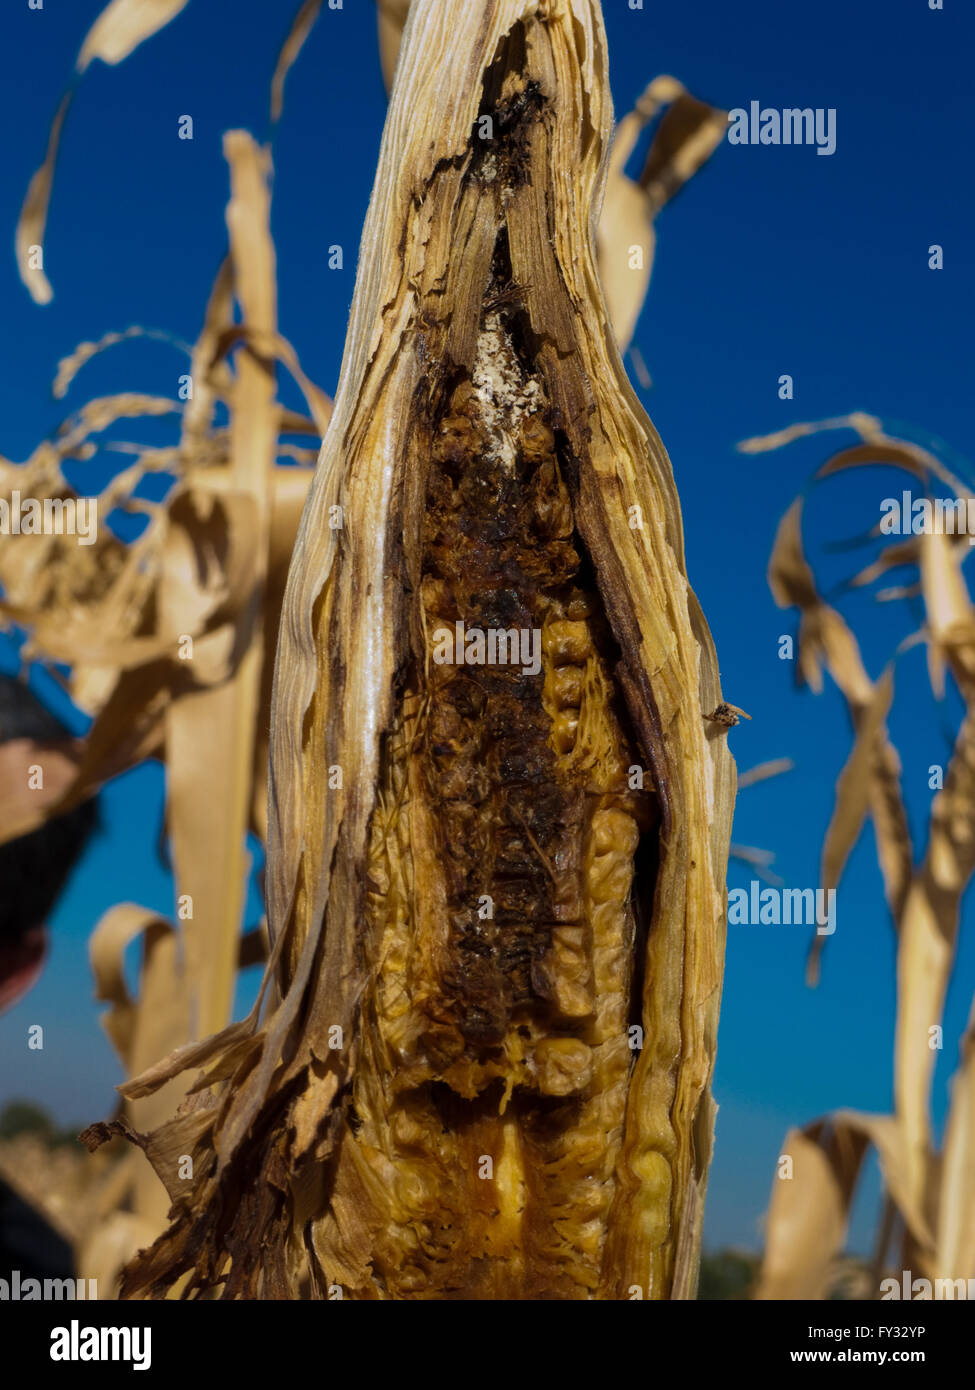 Insect pests eaten a maize cob Stock Photo